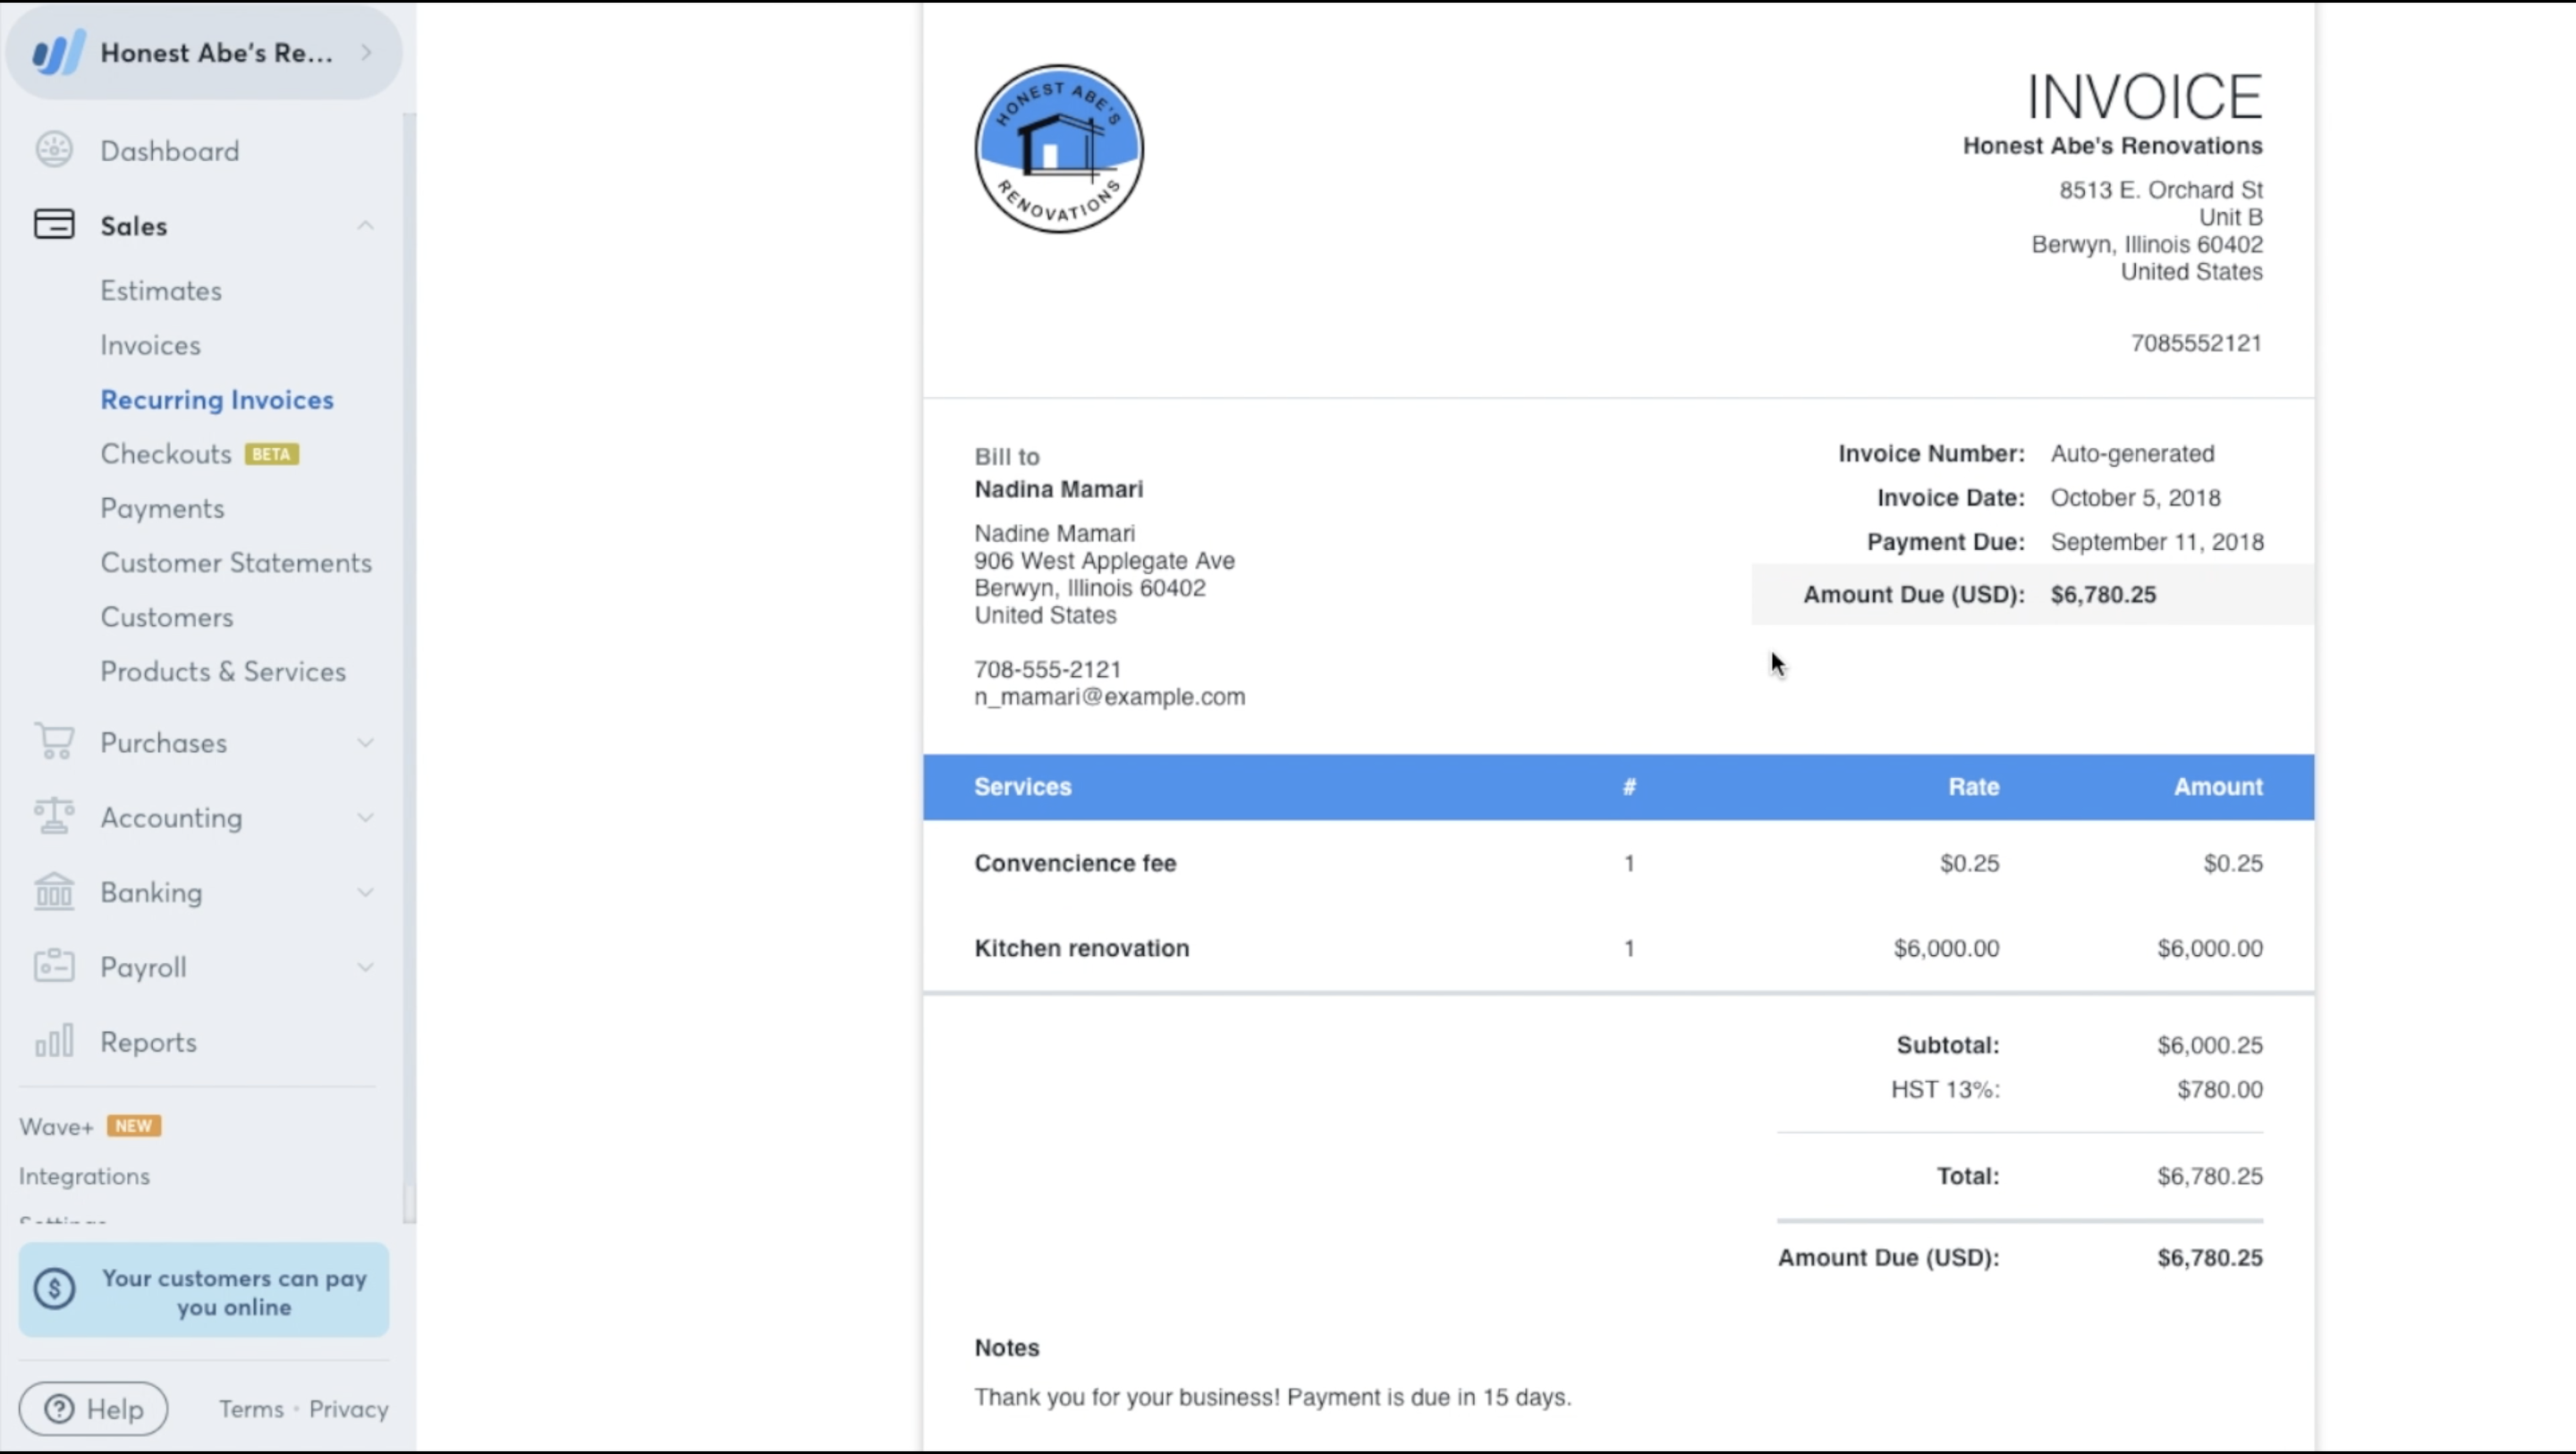 Recurring Invoices GoAutomatic With Wave Video Help Center - Invoice credit card payment